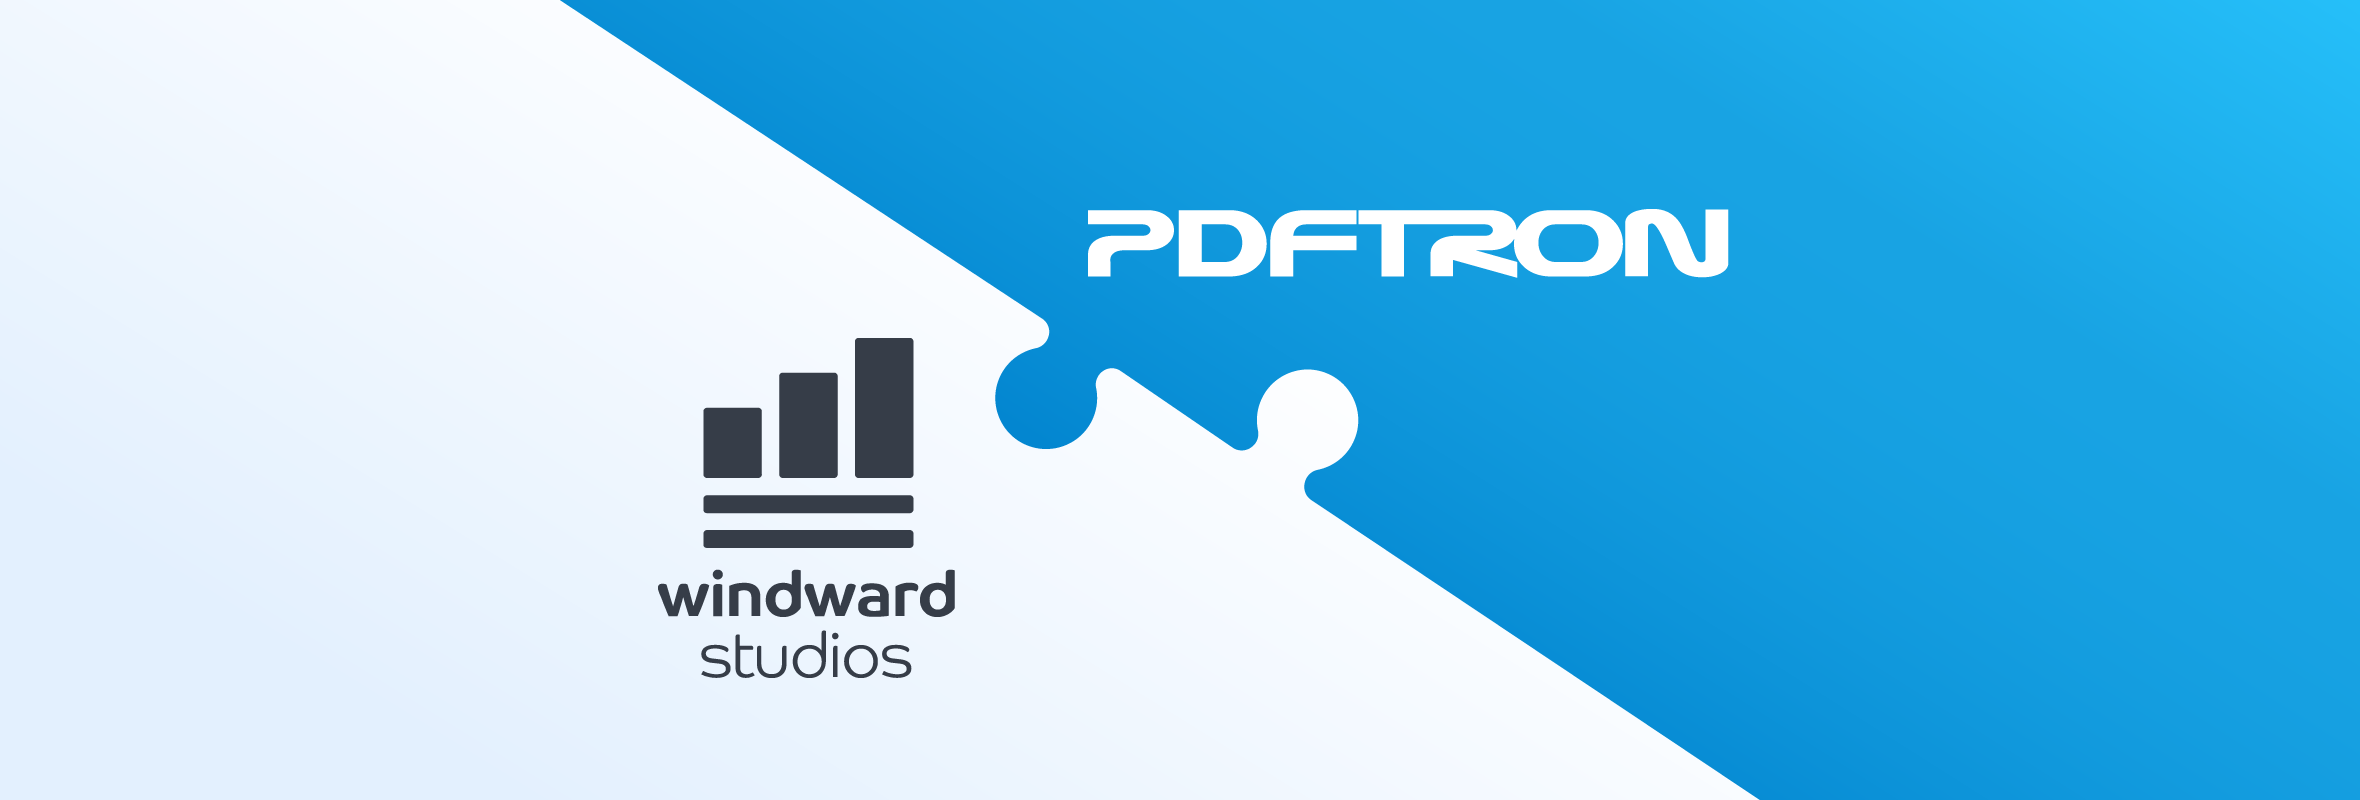 PDFTron Acquires Document Automation Leader Windward Studios